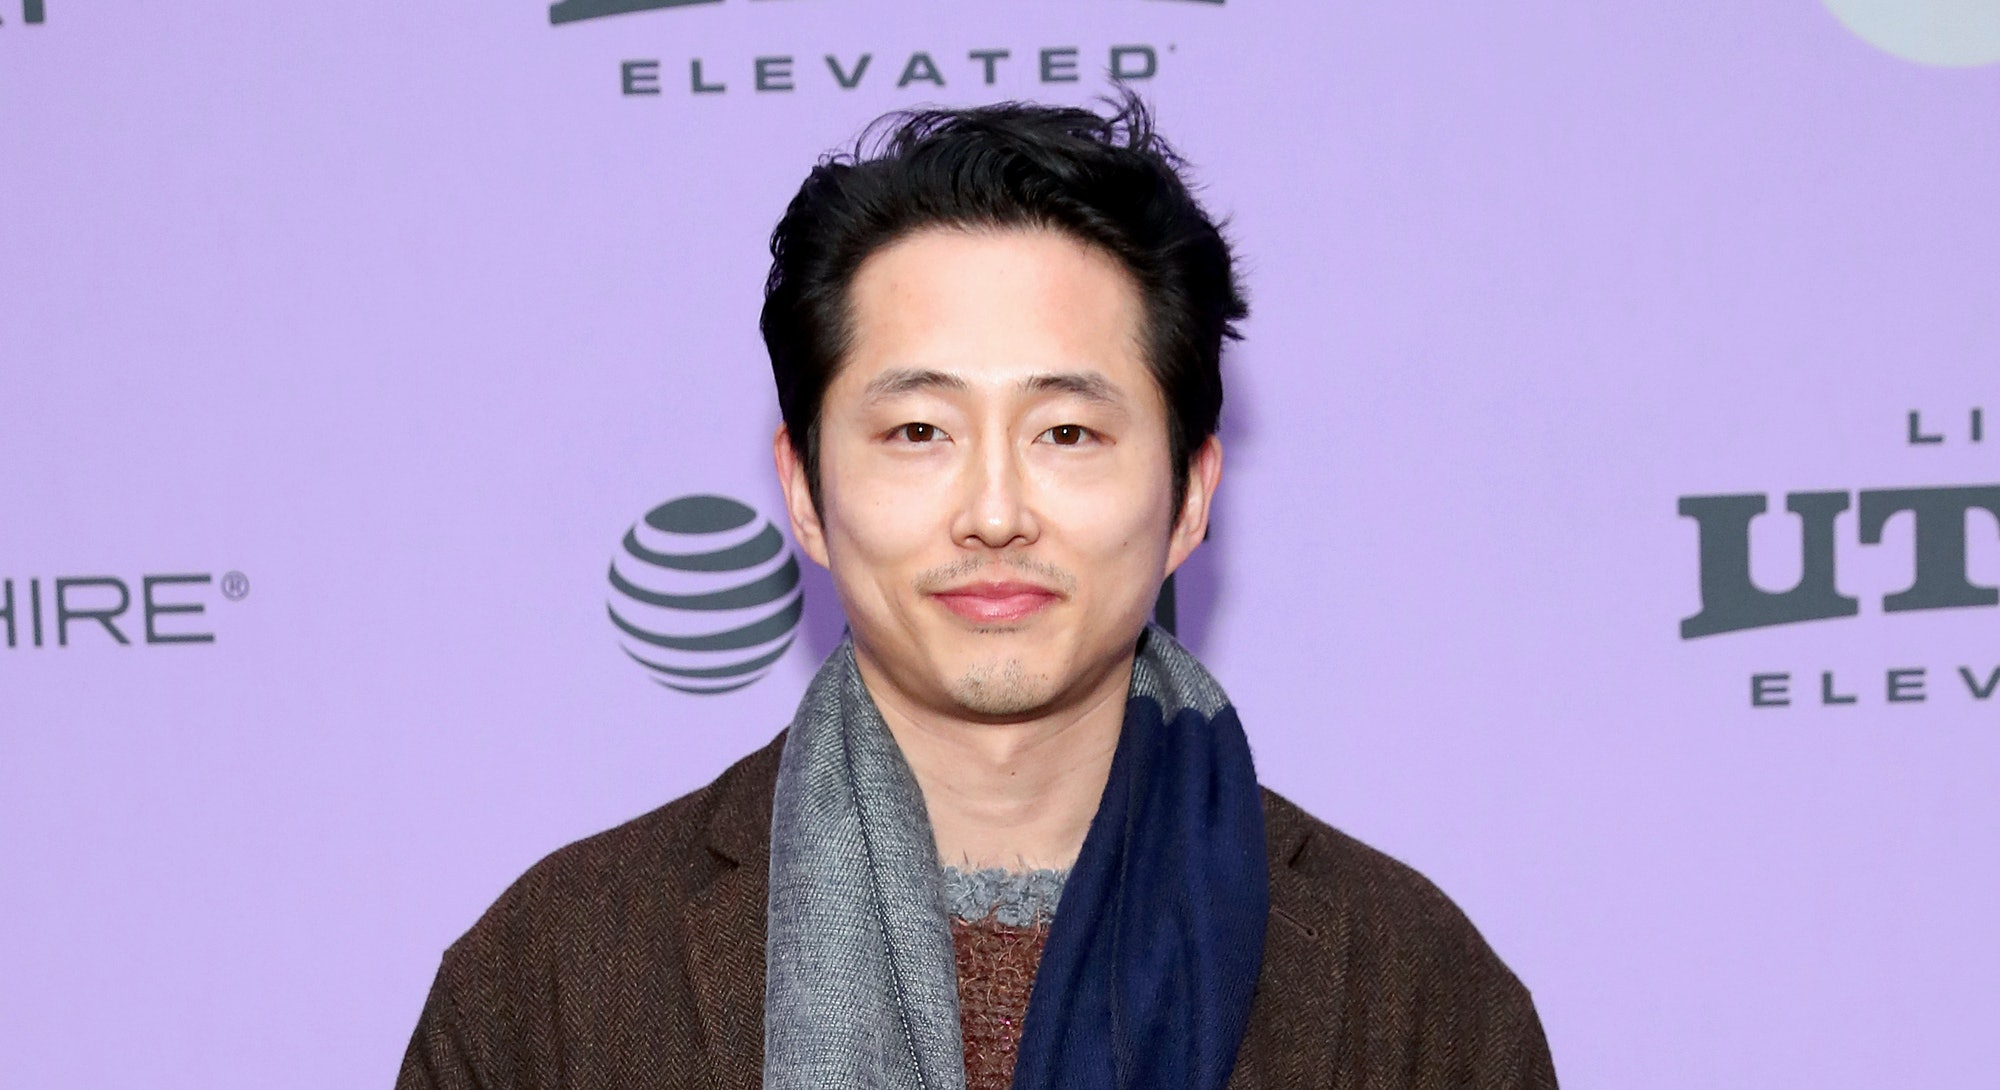 "PARK CITY, UTAH - JANUARY 26: Steven Yeun attends the 2020 Sundance Film Festival - ""Minari"" Premiere at Library Center Theater on January 26, 2020 in Park City, Utah. (Photo by Cindy Ord/Getty Images)"